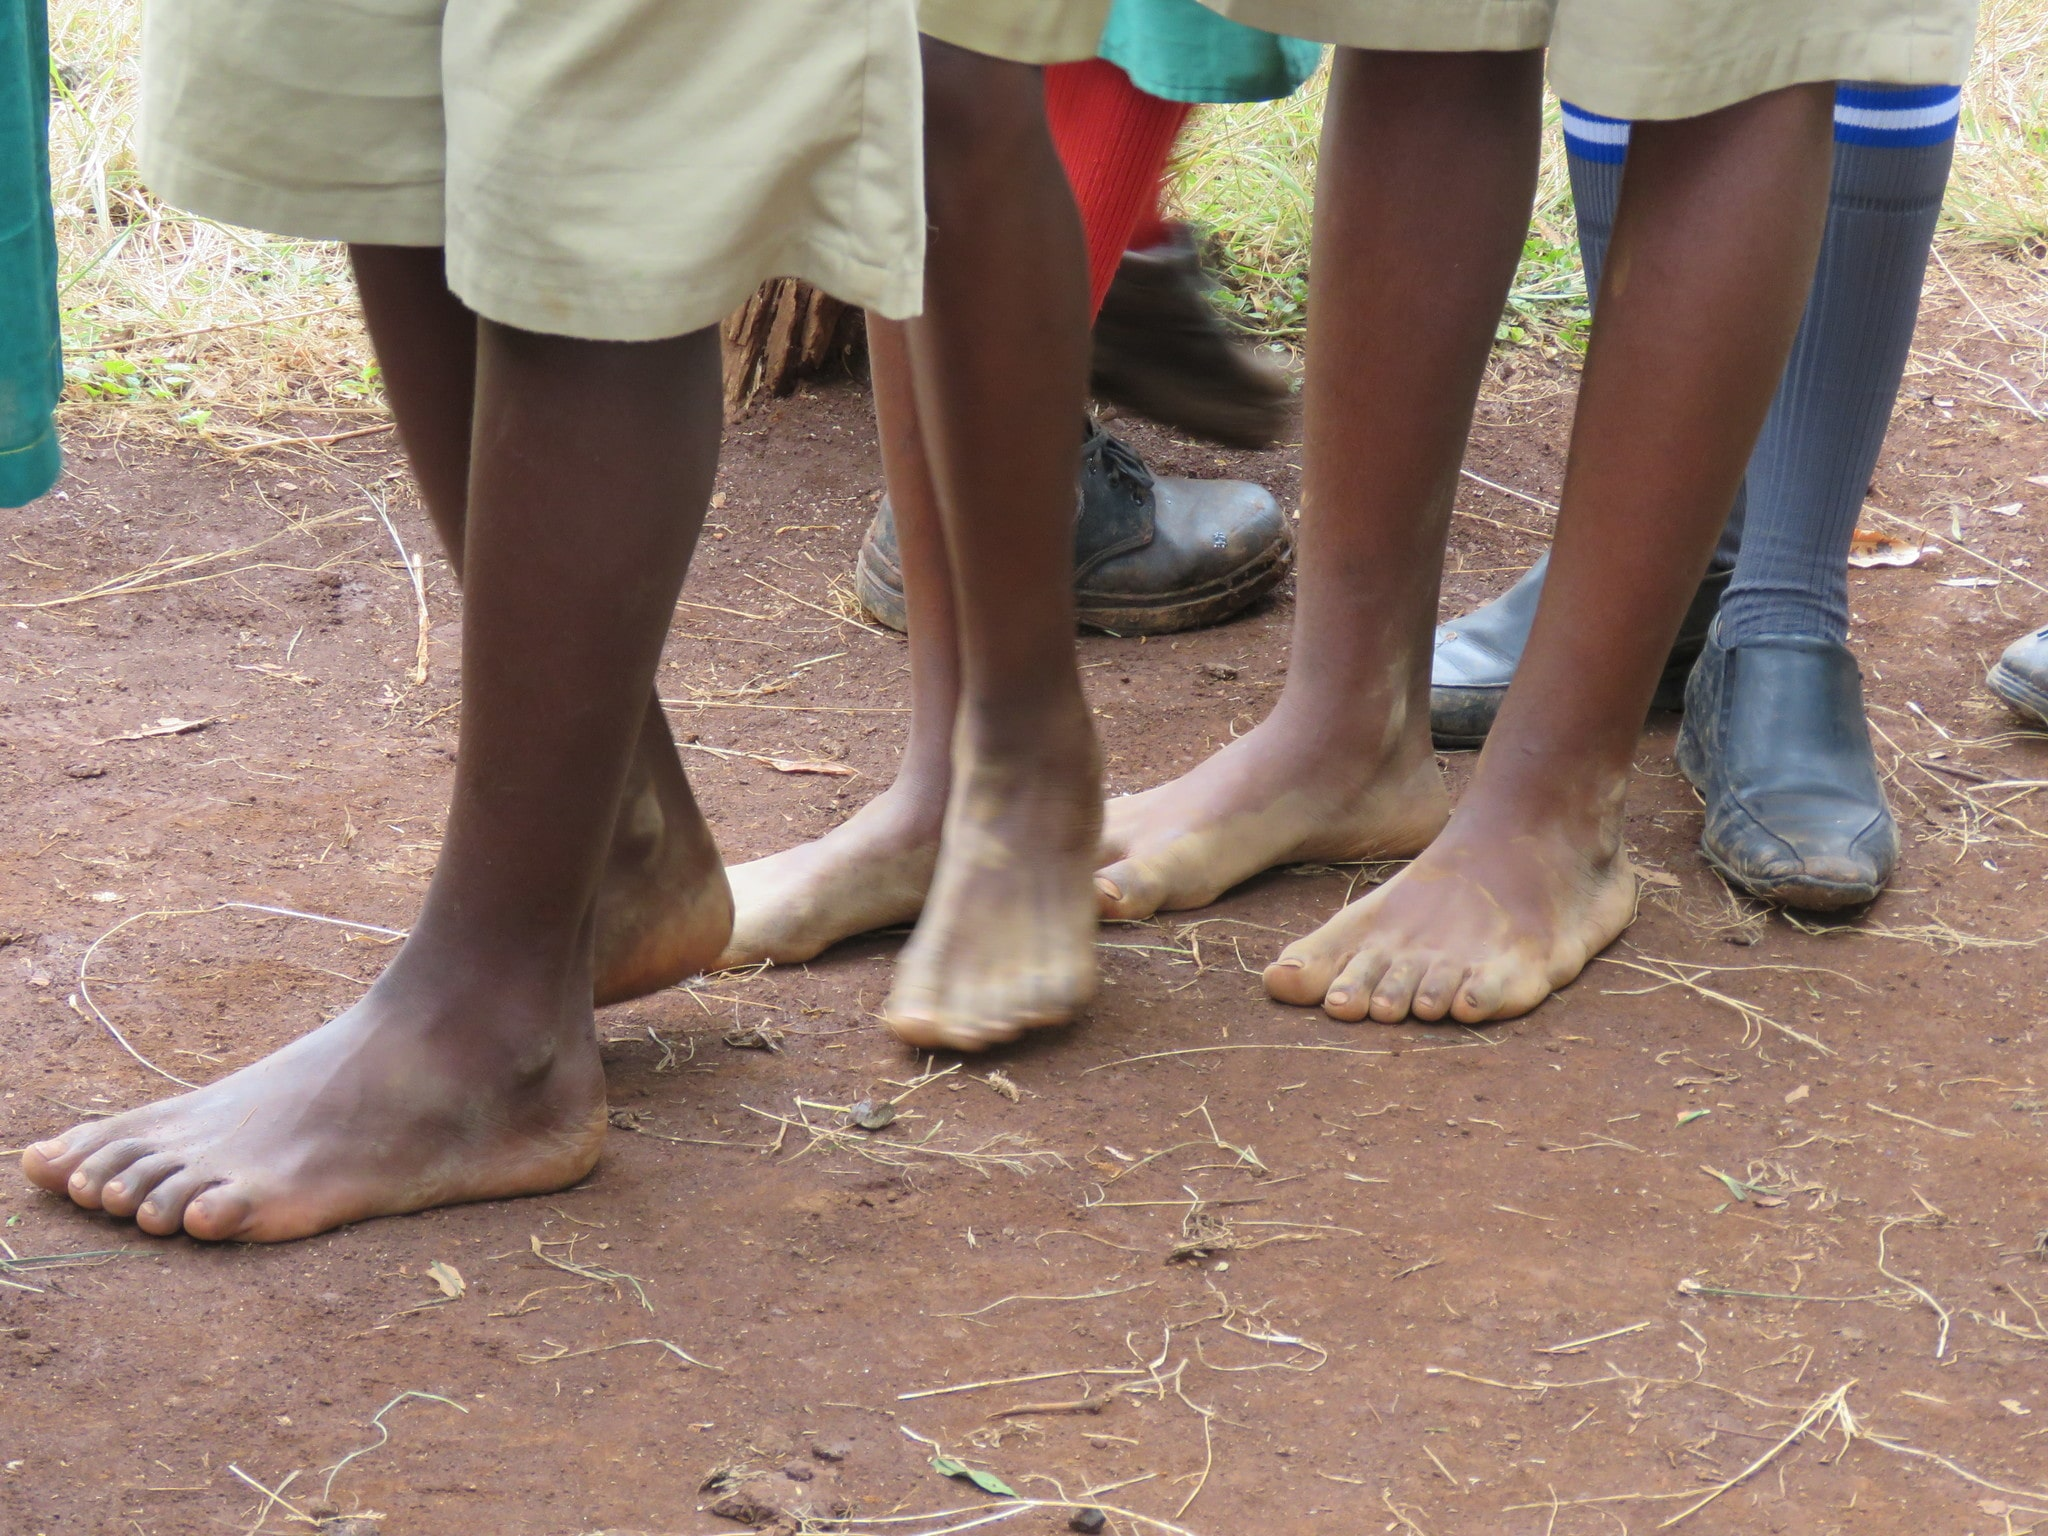 Children wait in line for distribution of porridge, school supplies and shoes.